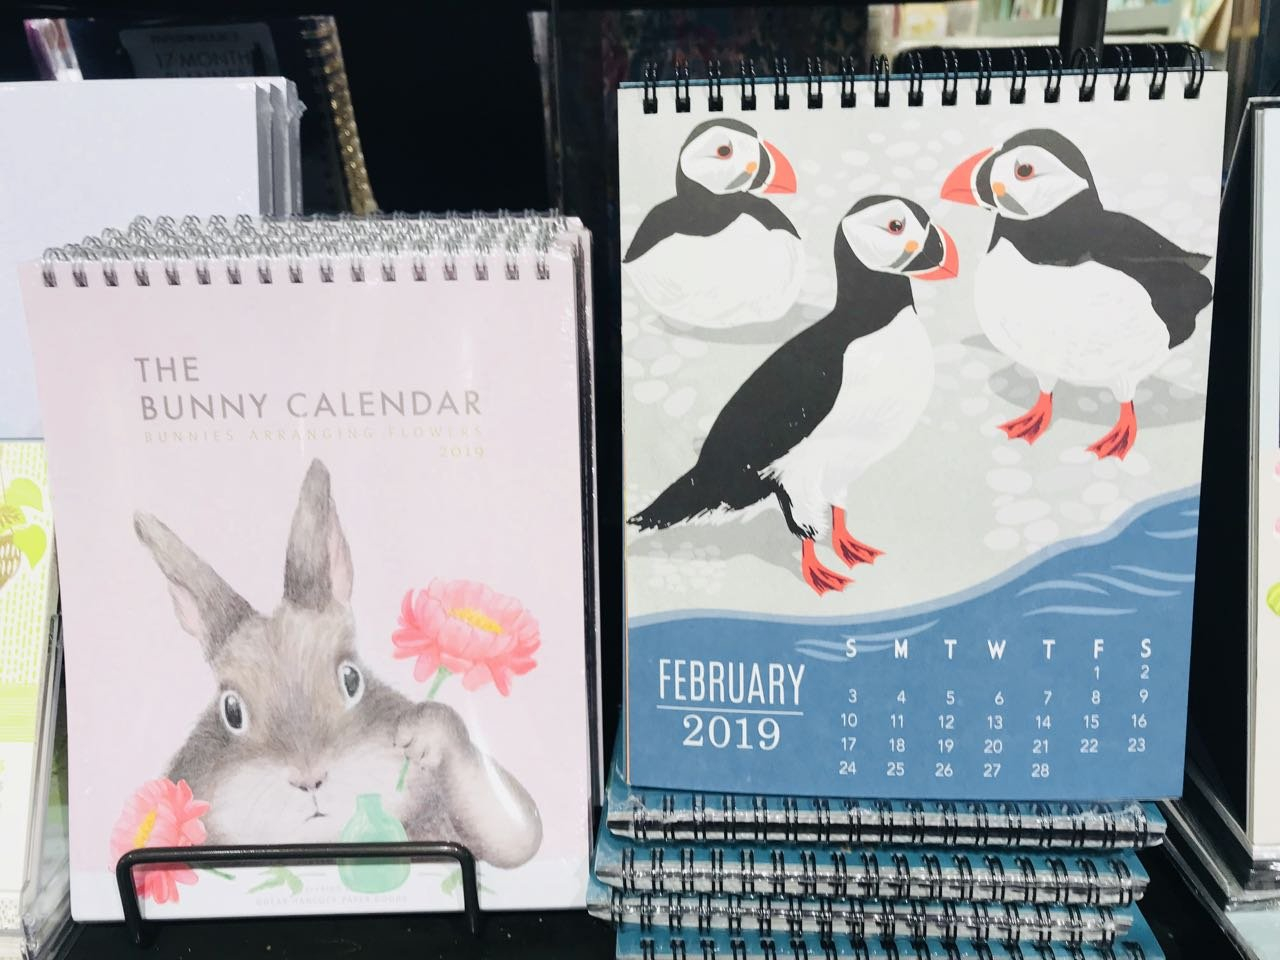 2019 Calendars On Sale, And Selling Calendar 2019 Sale